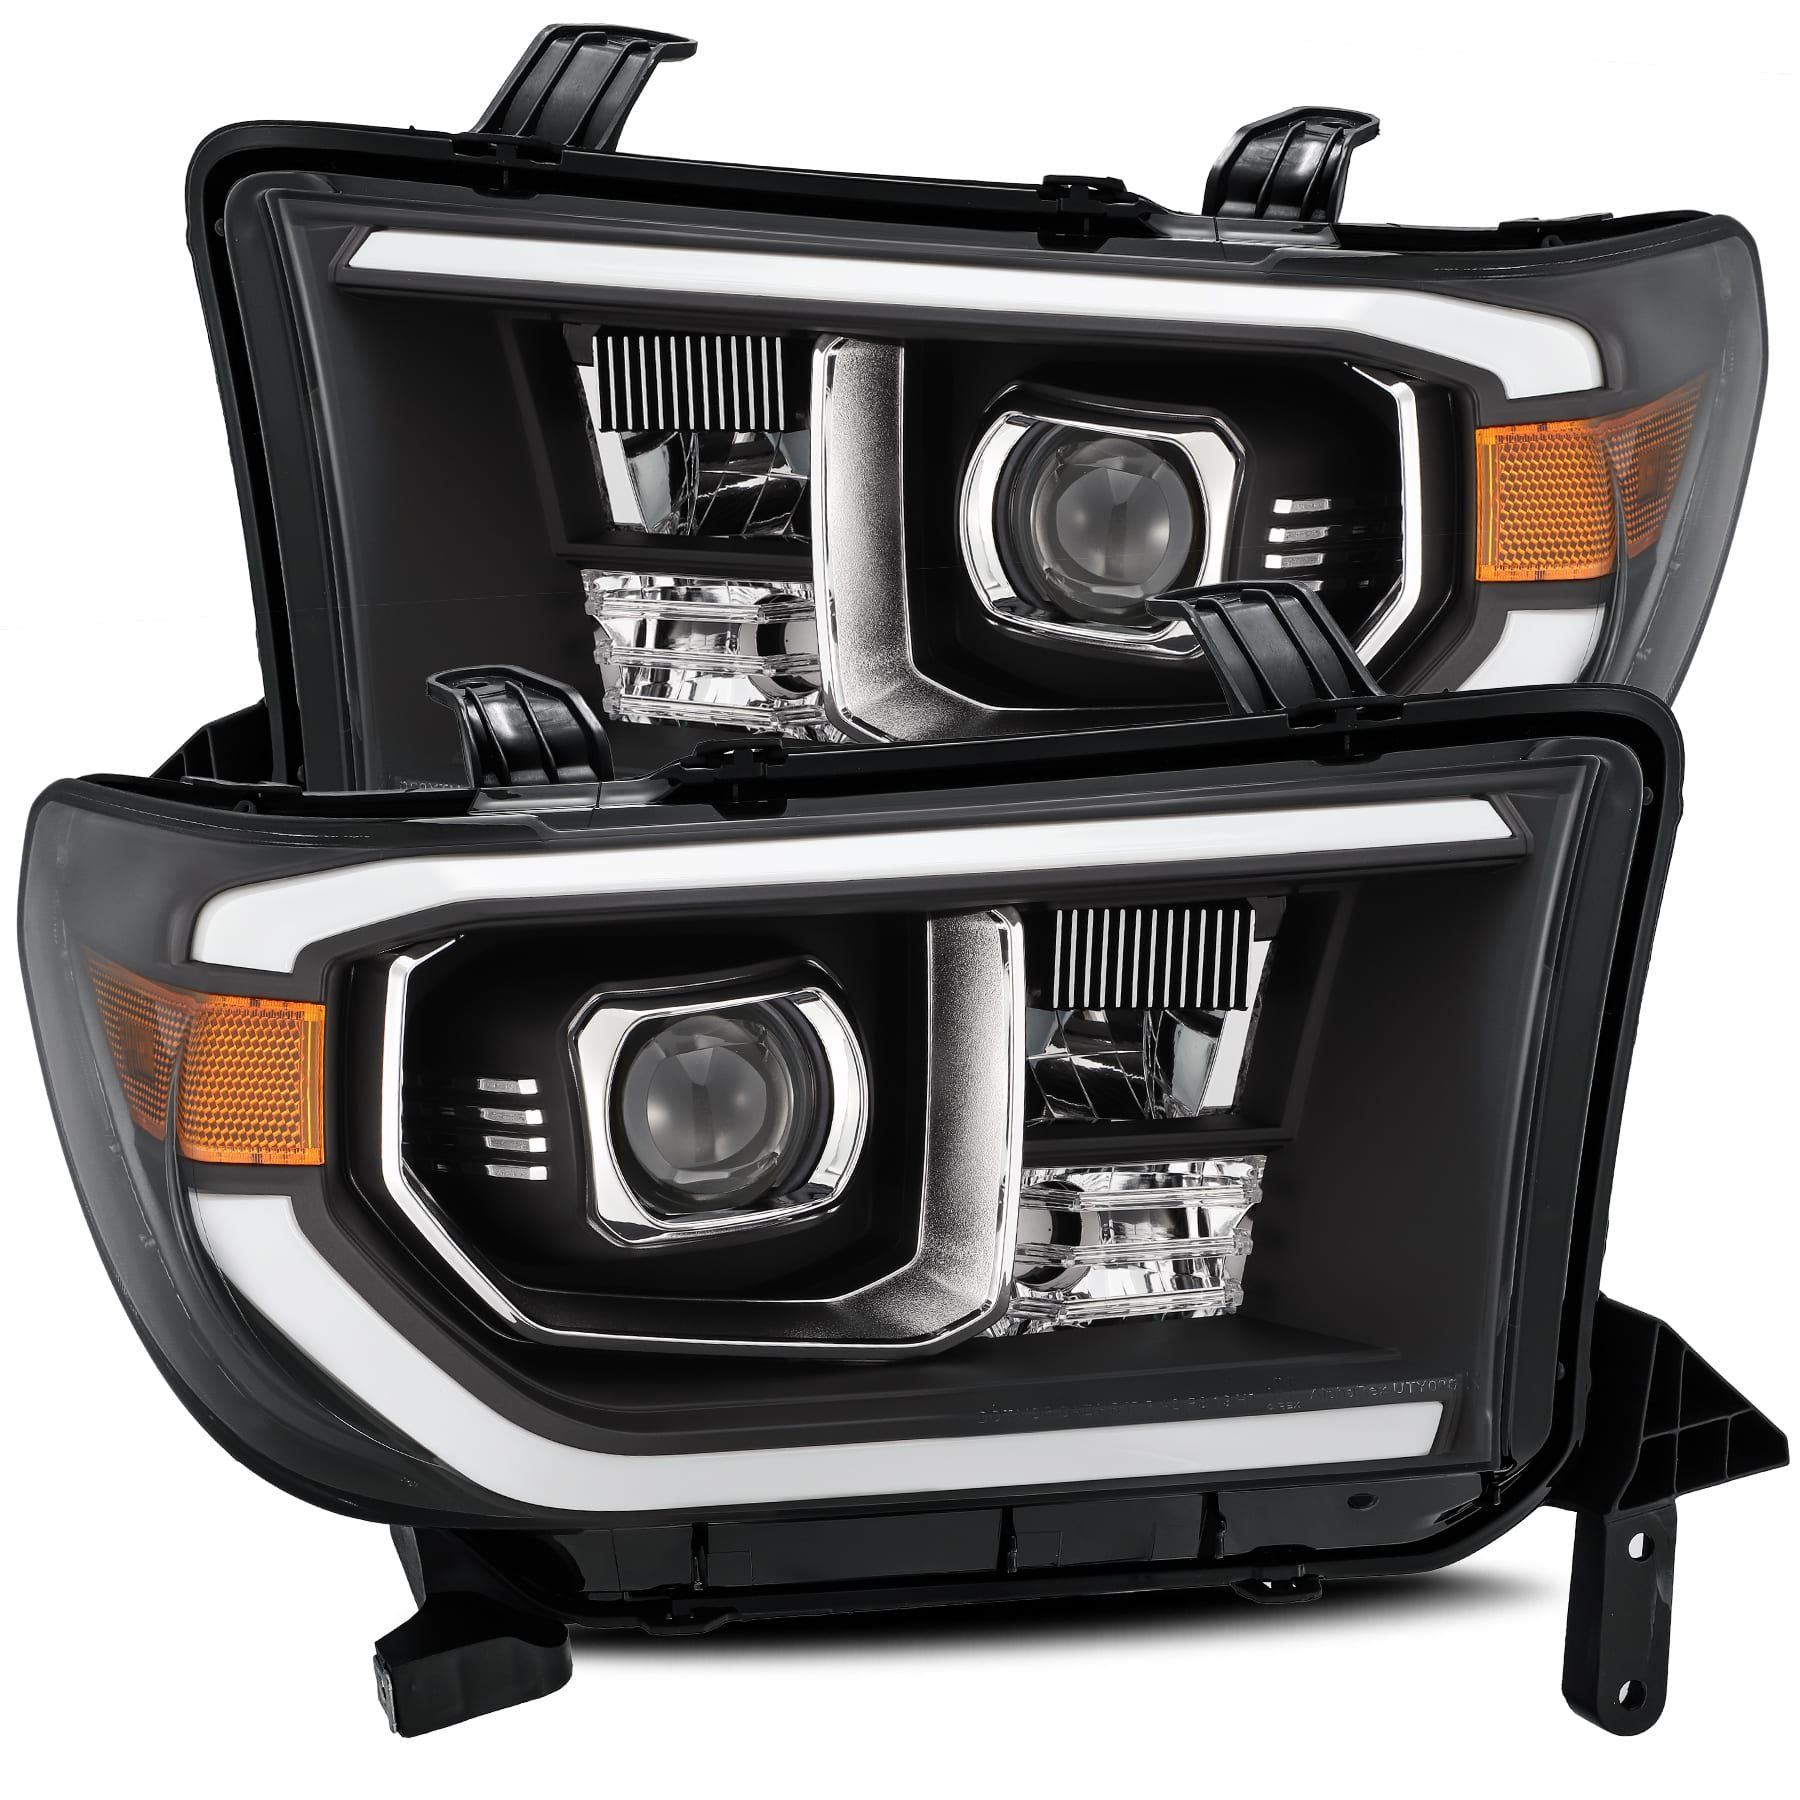 AlphaRex 07-13 Tundra PRO-Series Projector Headlights, w/Level Adjuster Black - Ships Free